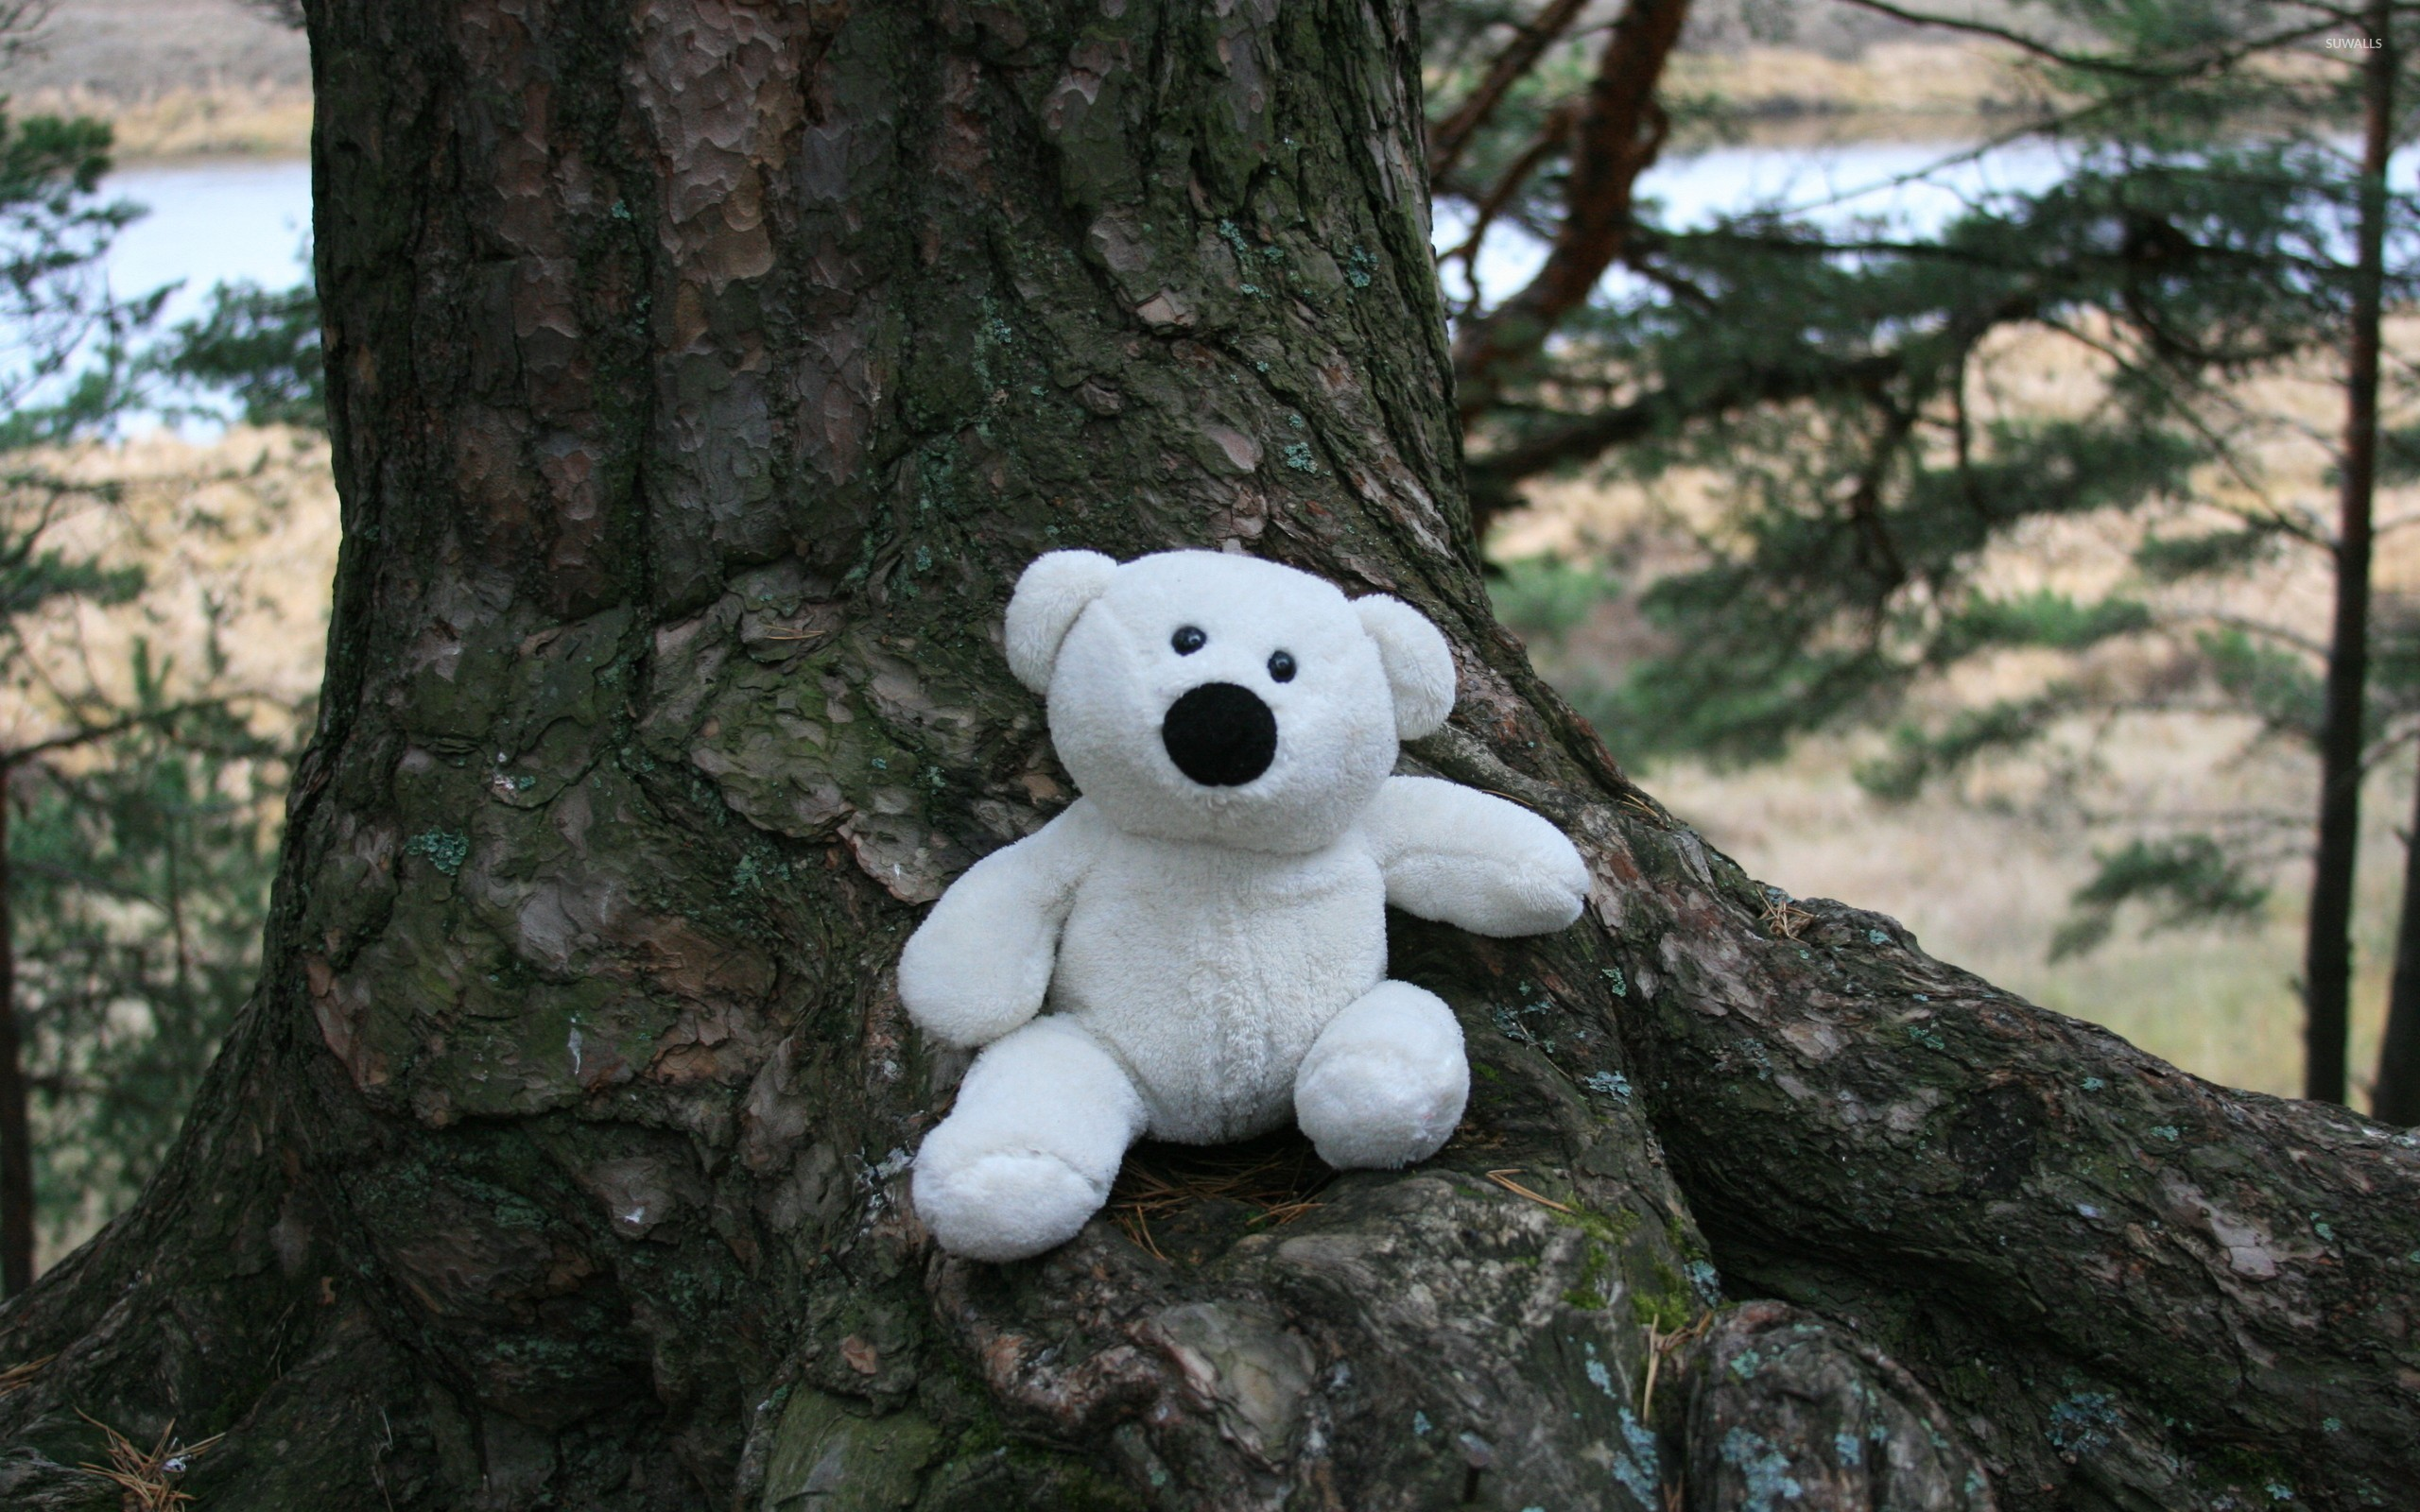 Sad Alone Quotes Hd Wallpaper White Teddy Bear On A Tree Wallpaper Photography